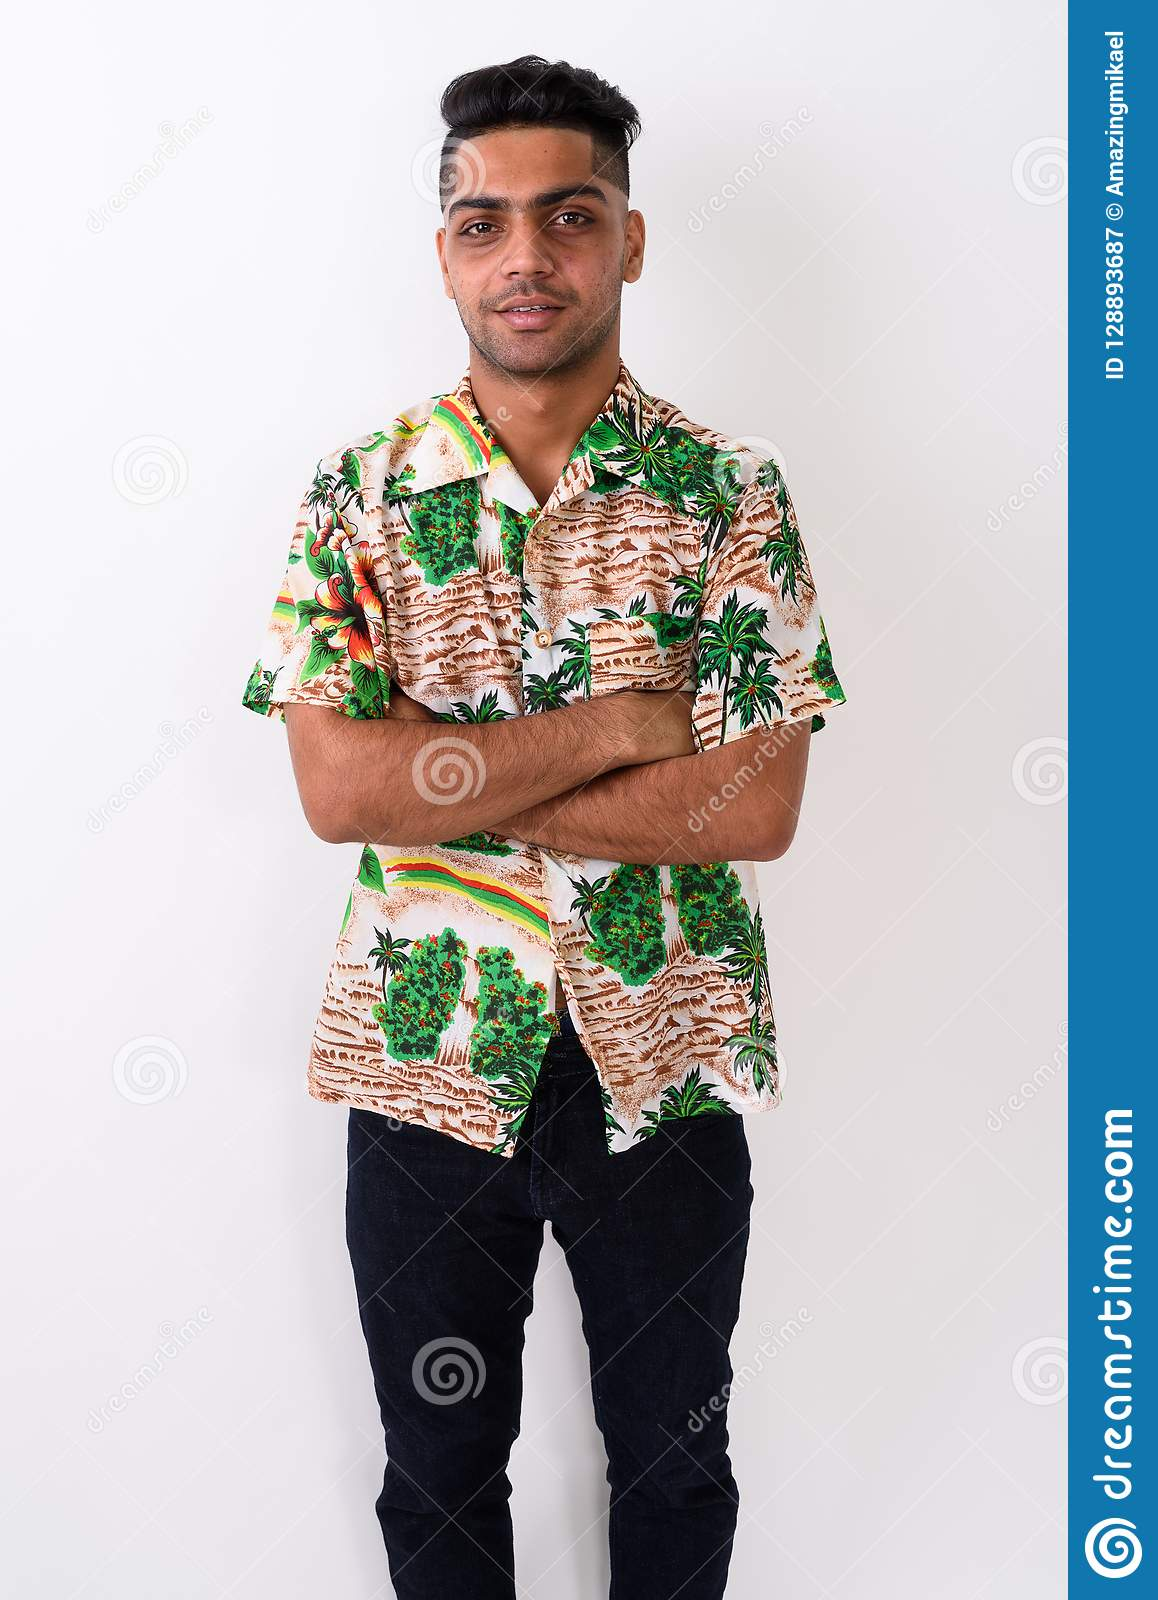 b4739d137 Studio shot of young Indian tourist man wearing Hawaiian shirt against  white background